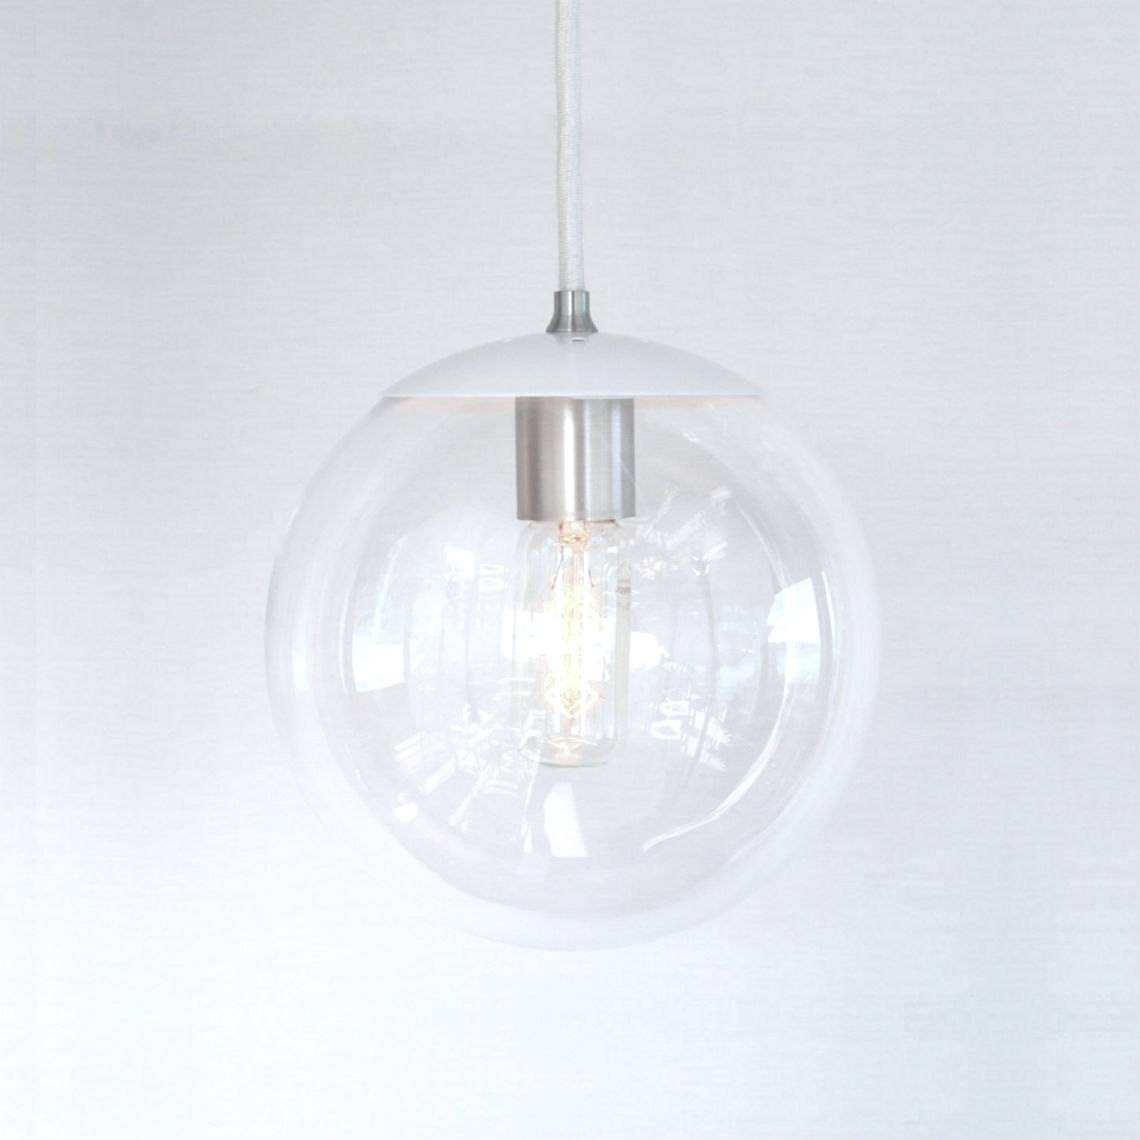 Impressive On Clear Globe Pendant Light For Home Decor Pictures pertaining to Clear Glass Globe Pendant Light Fixtures (Image 6 of 15)